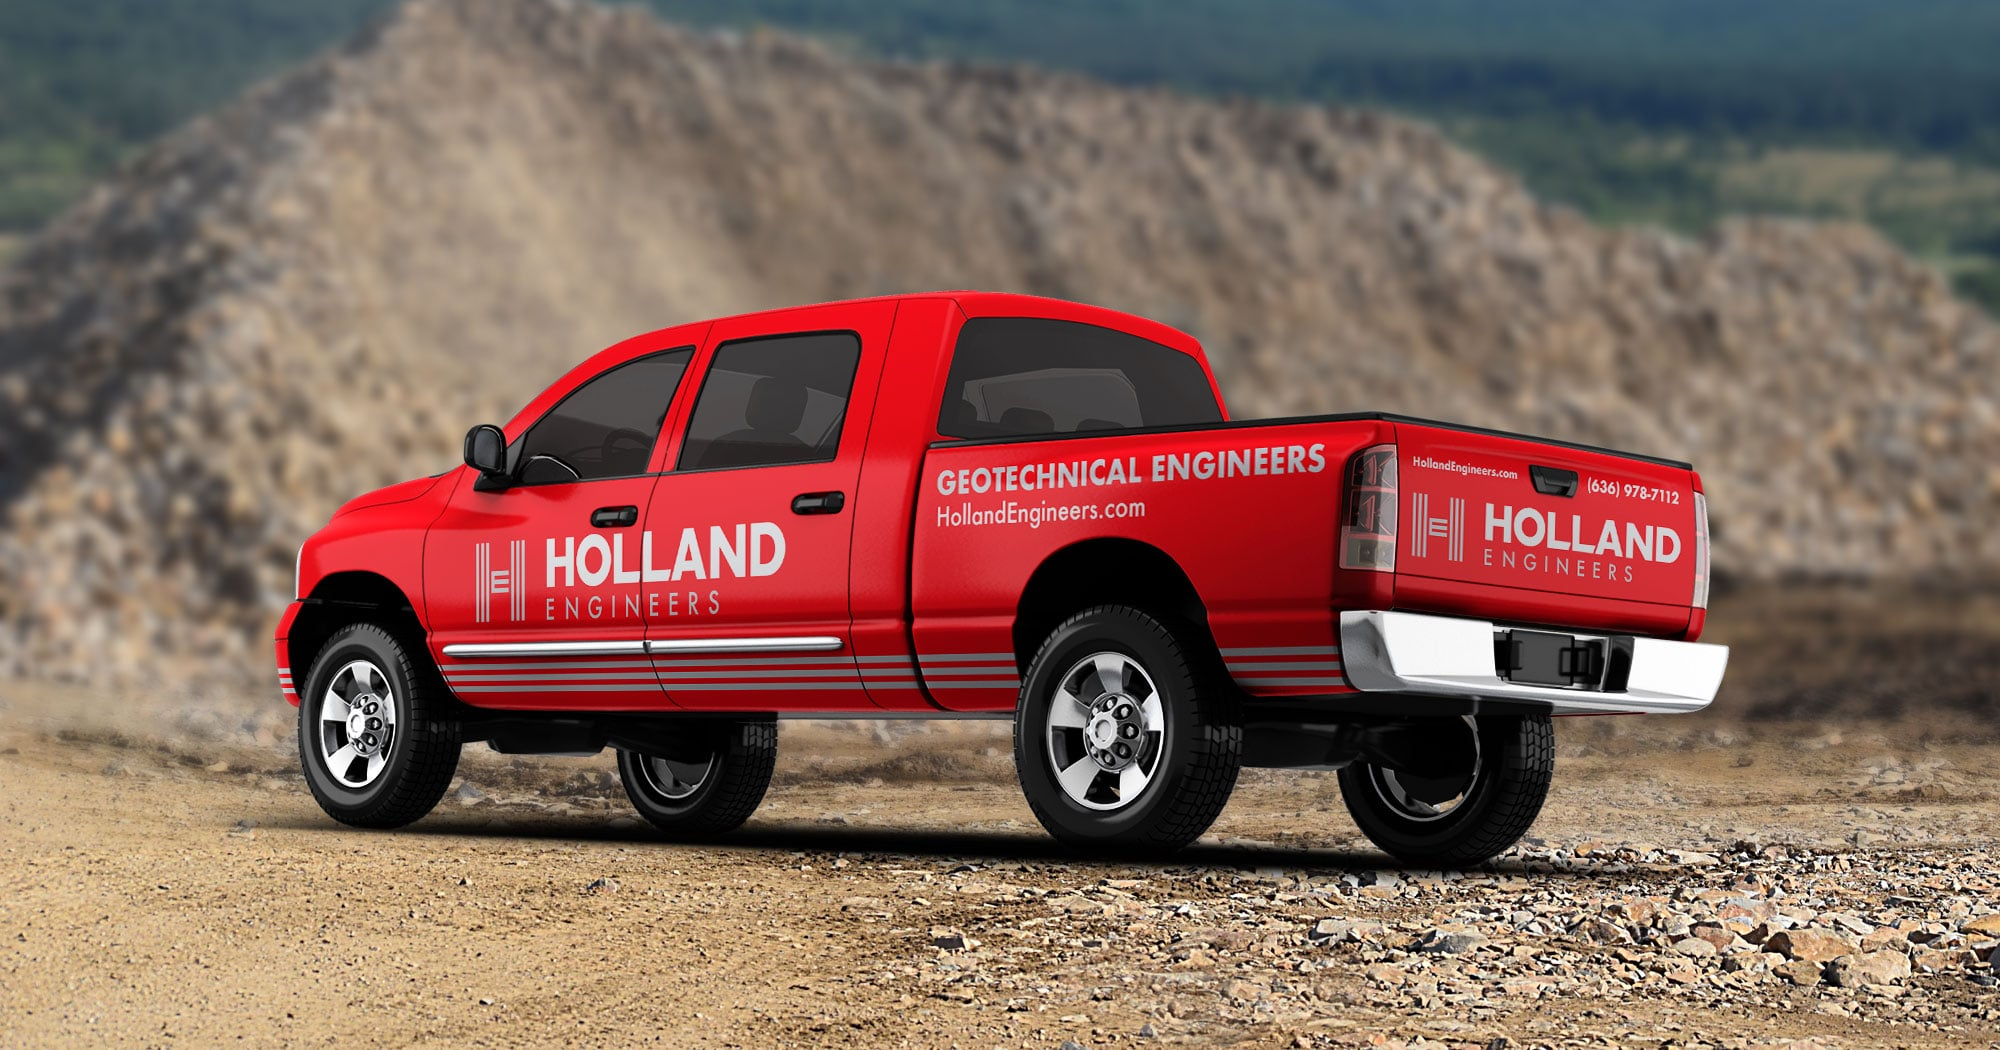 Holland Engineers truck graphics